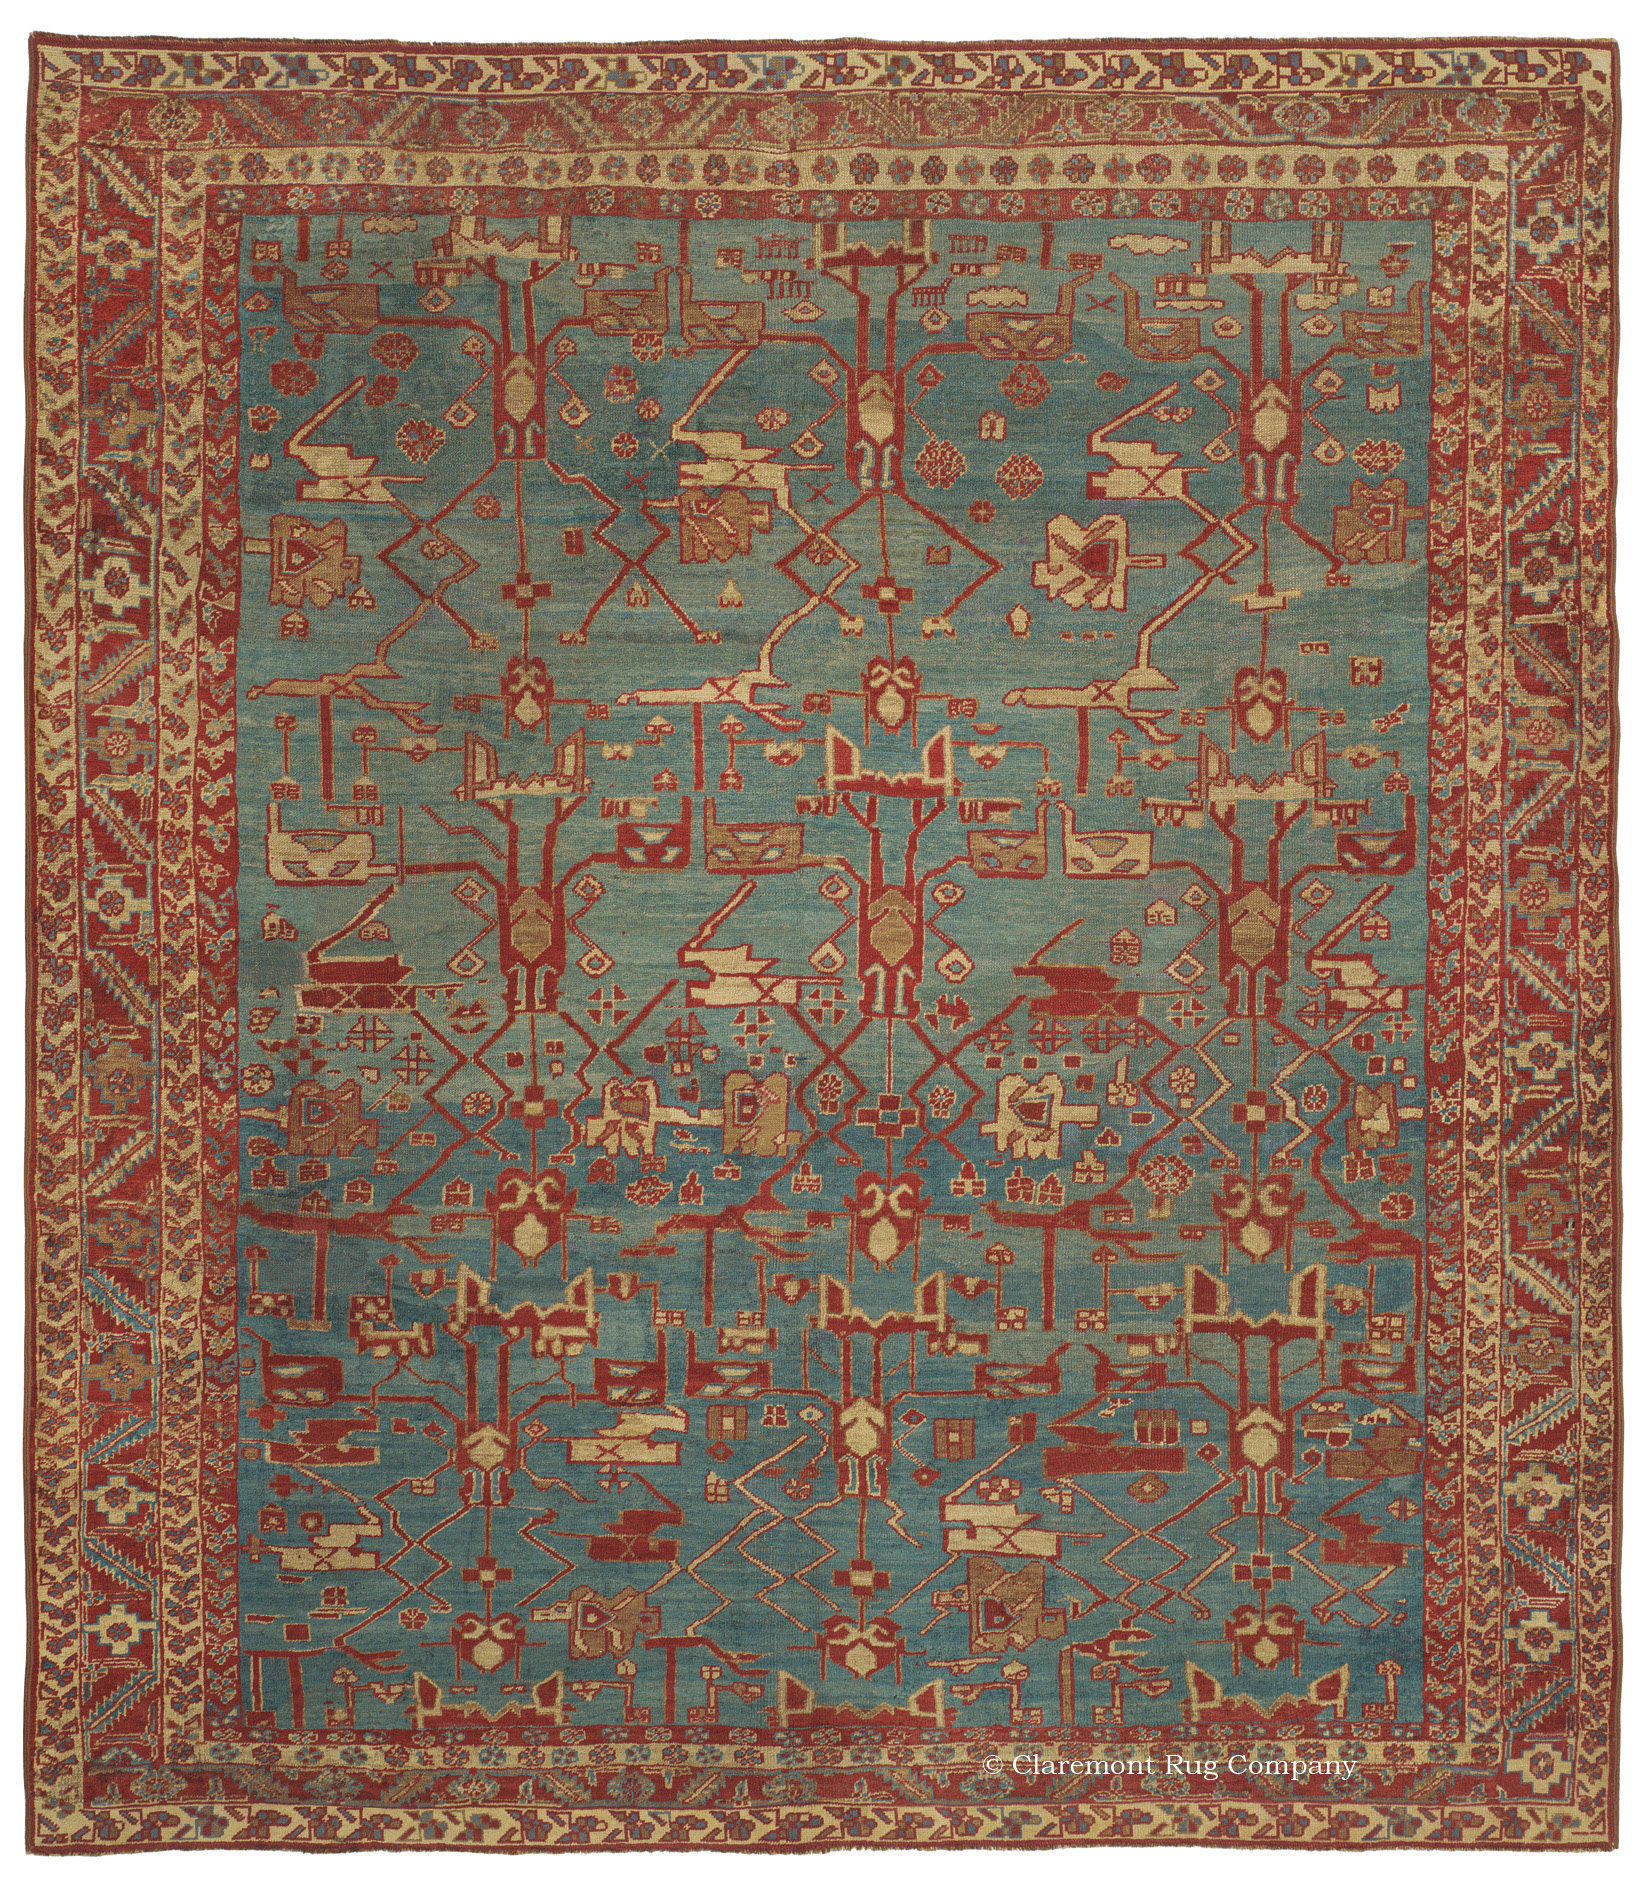 Claremont Rug Company Exhibits Best Of The Antique Rugs Sold In 2017 Business Wire